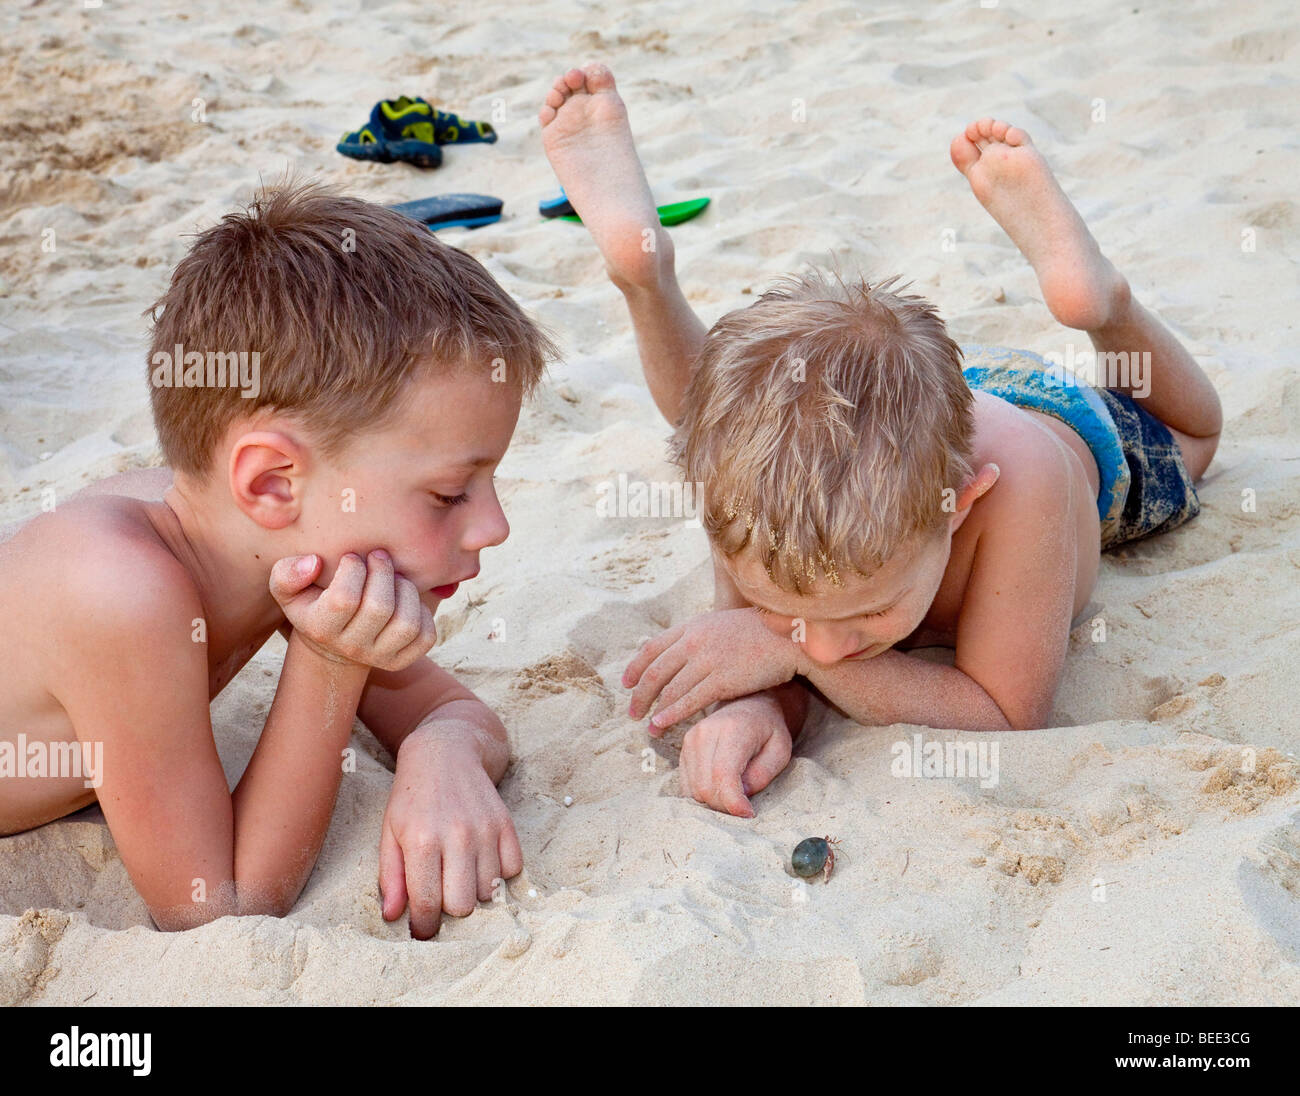 Two boys 5 and 6 years old watching a hermit crab on the beach - Stock Image